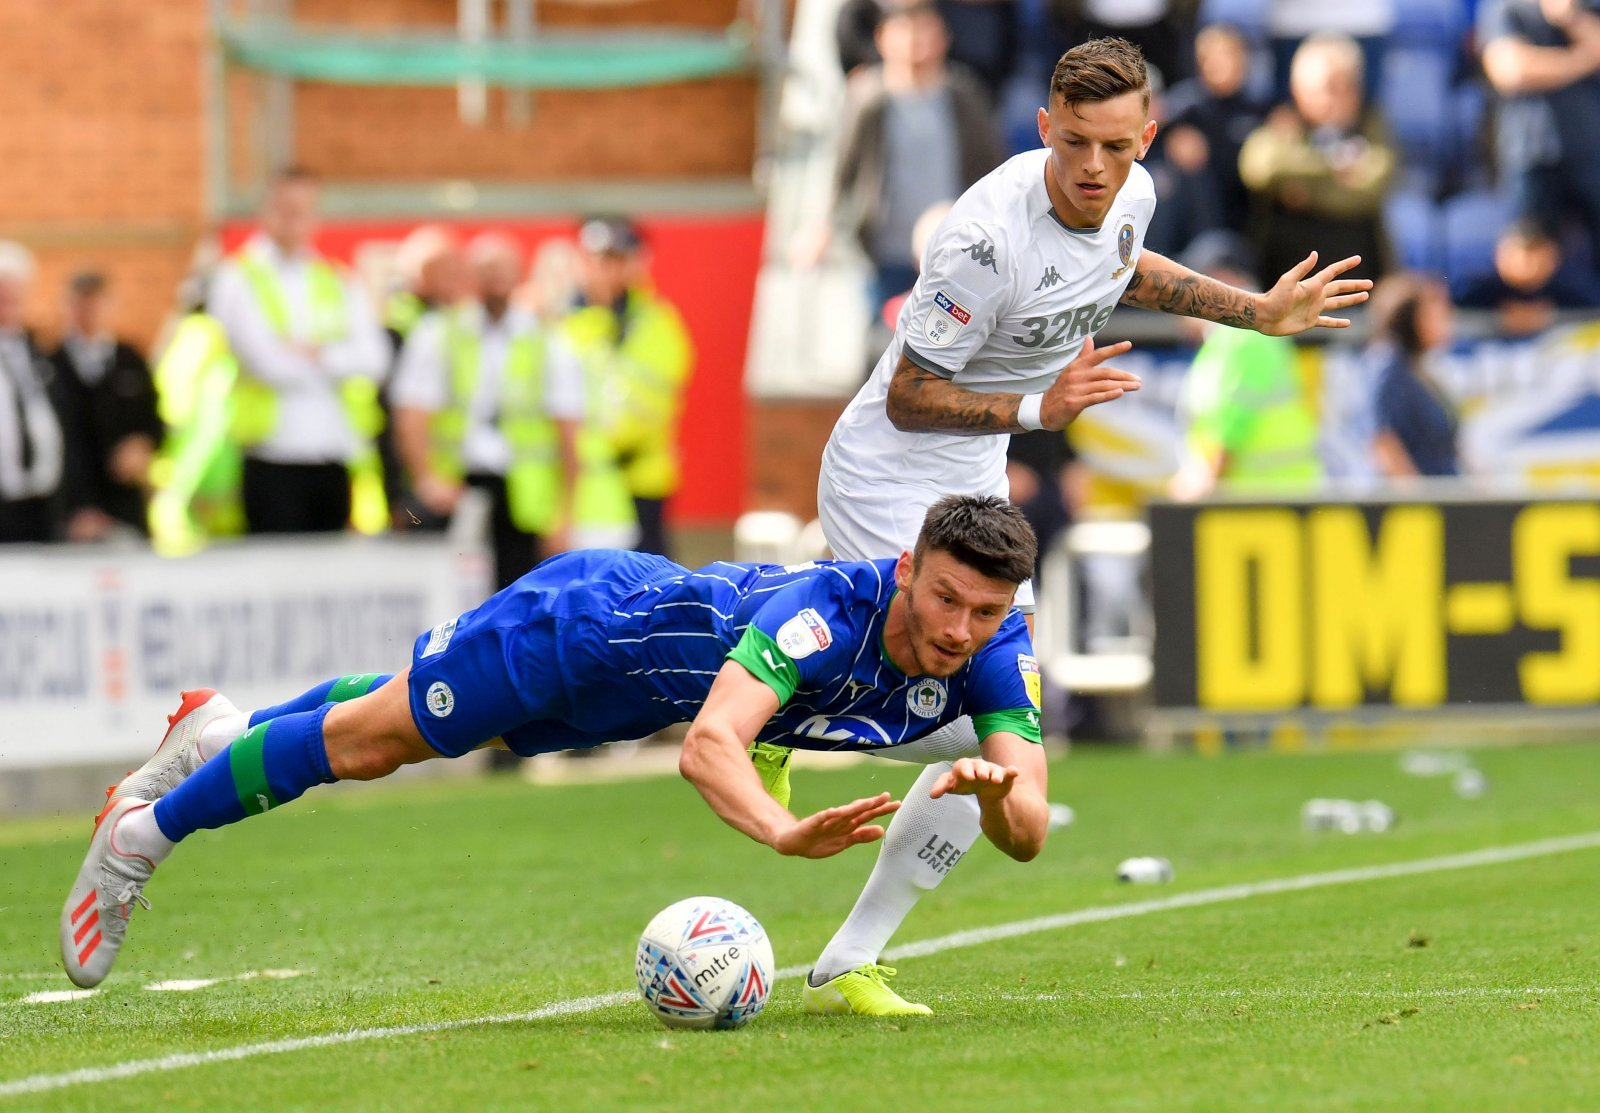 Leeds United: Brighton and Hove Albion rejected permanent clause in Ben White's loan deal